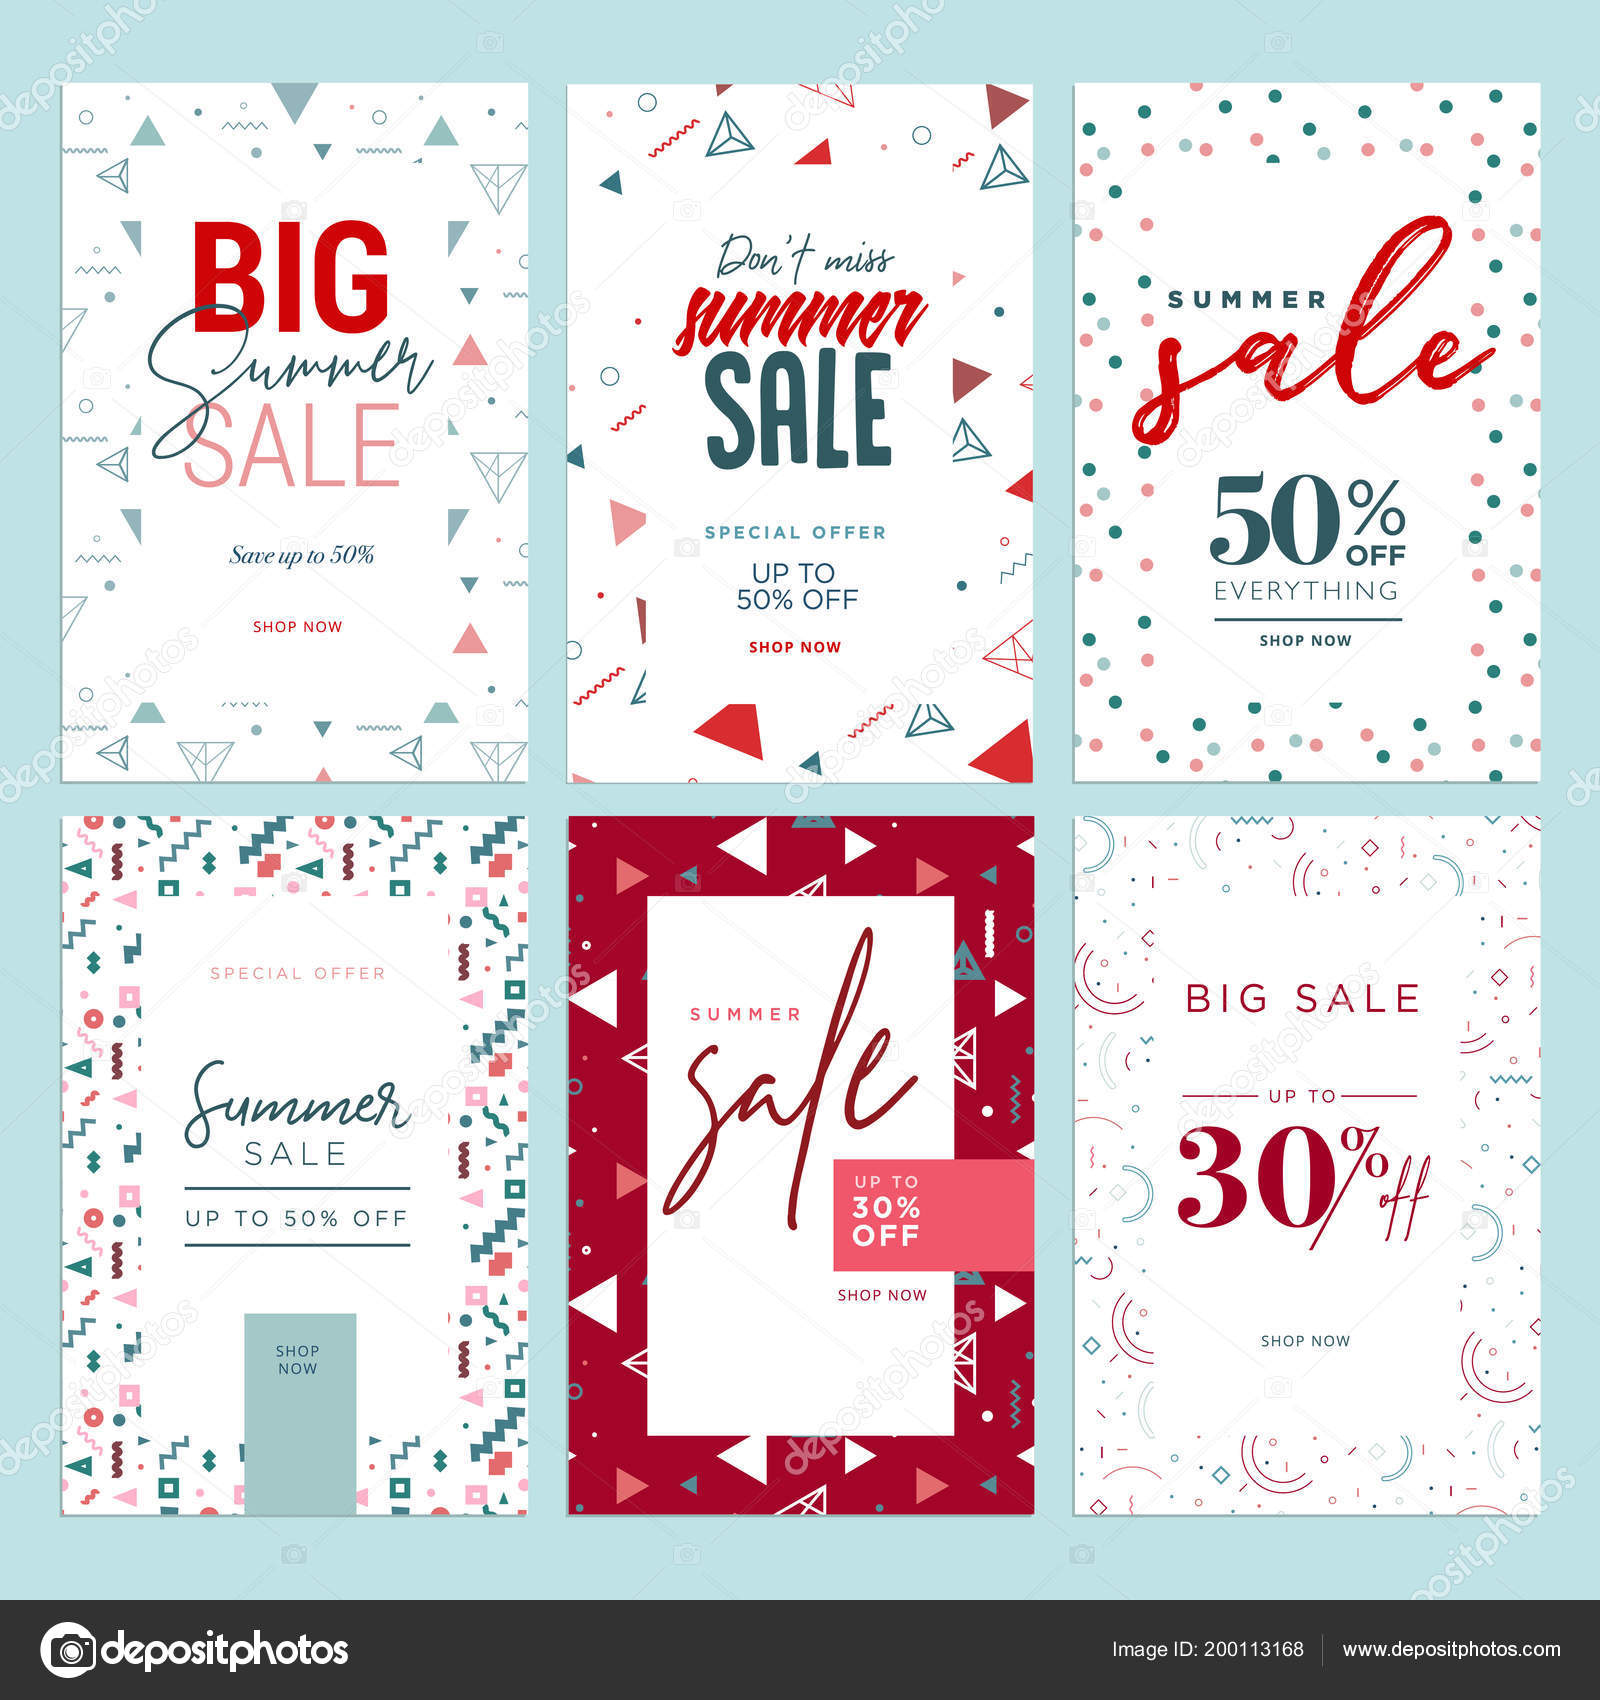 summer sale banners vector illustrations online shopping ads posters